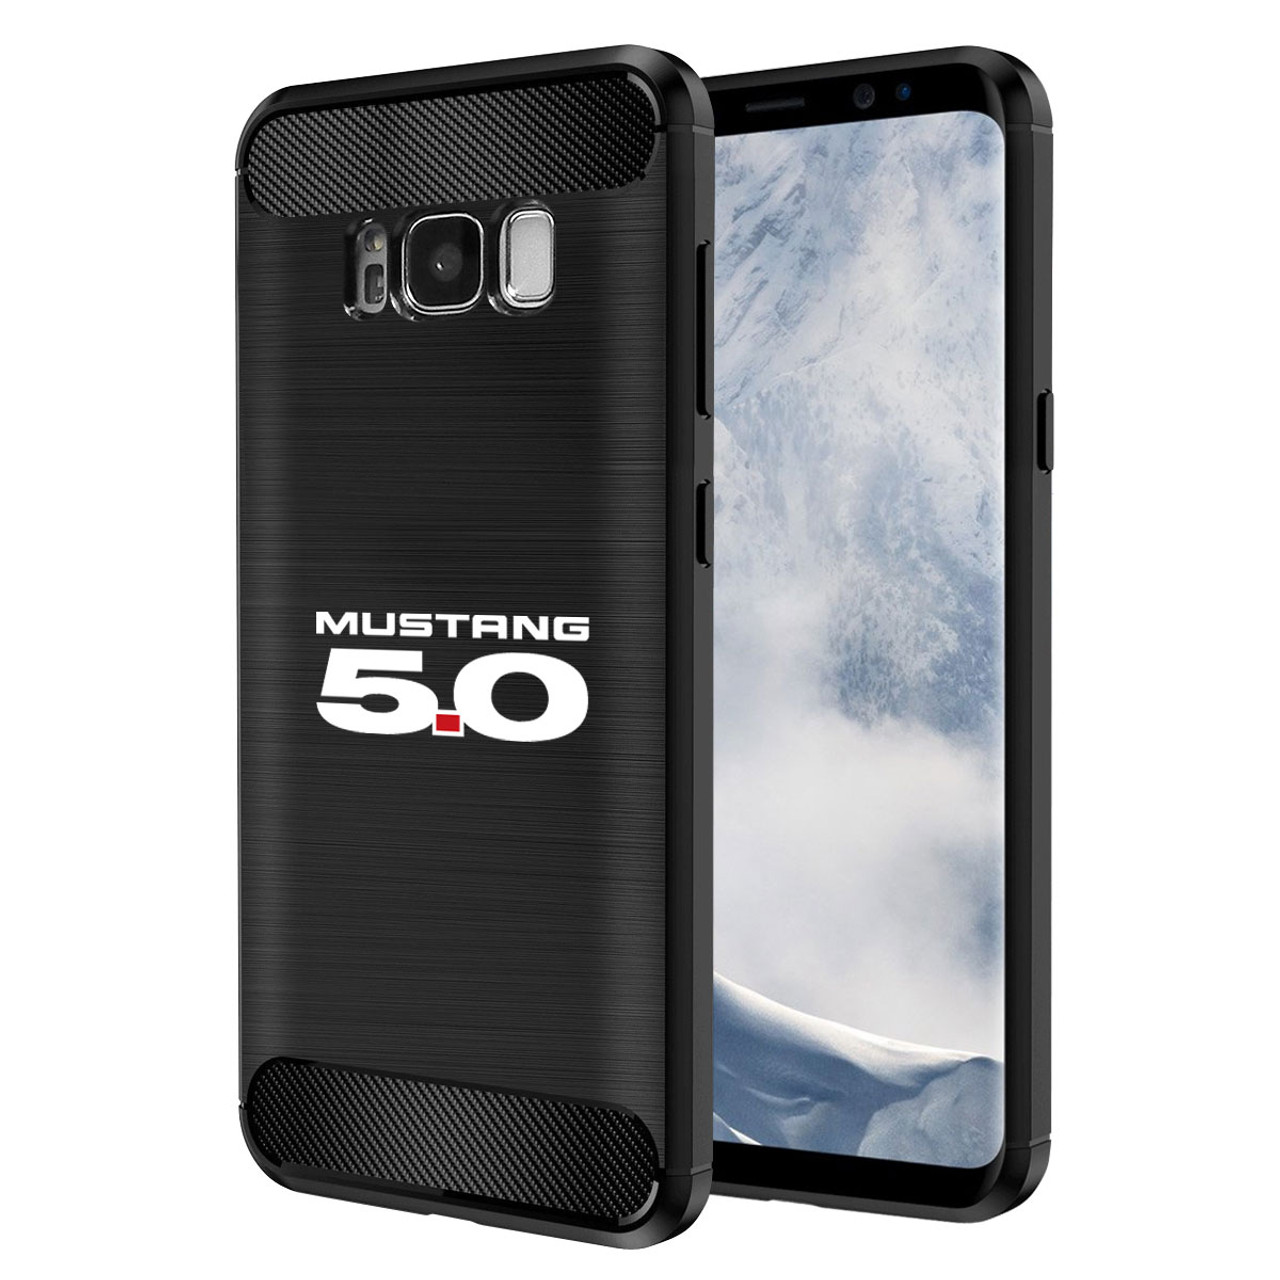 Galaxy s8 case ford mustang 5 0 tpu shockproof black carbon fiber textures stripes cell phone